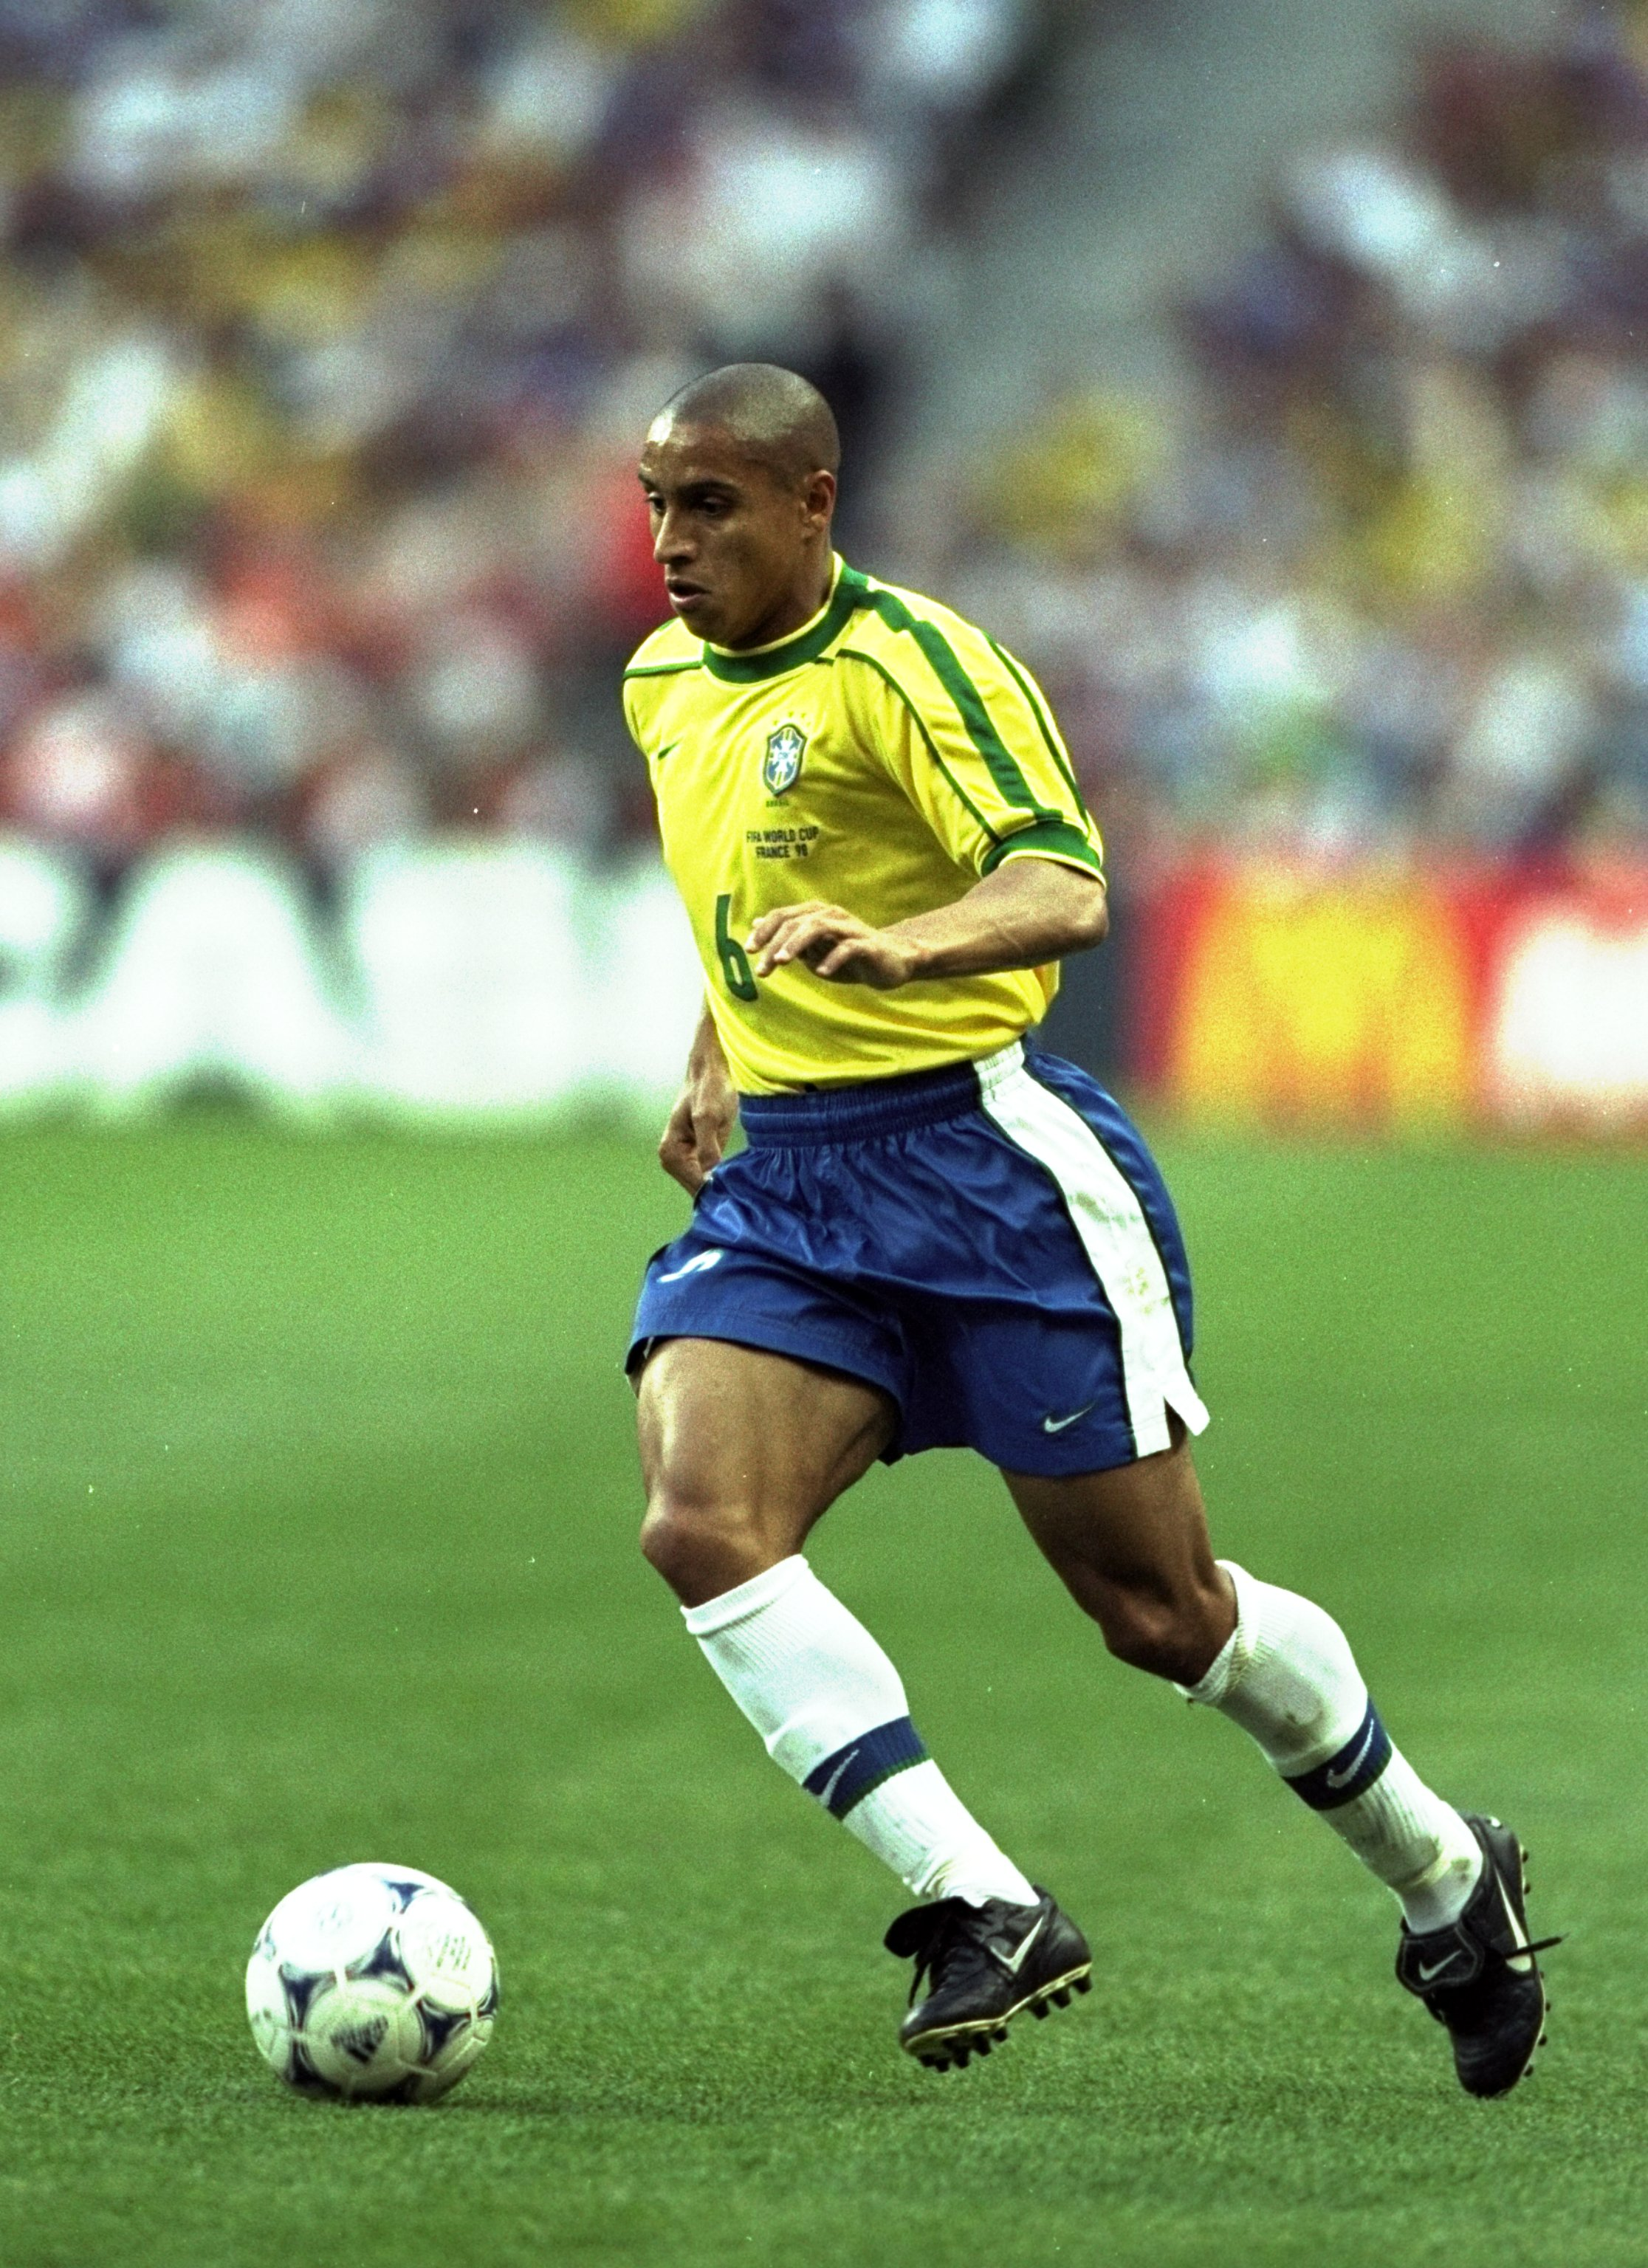 12 Jul 1998:  Roberto Carlos of Brazil on the ball during the World Cup Final against France at the Stade de France in St Denis. France won 3-0.  \ Mandatory Credit: Ben Radford /Allsport